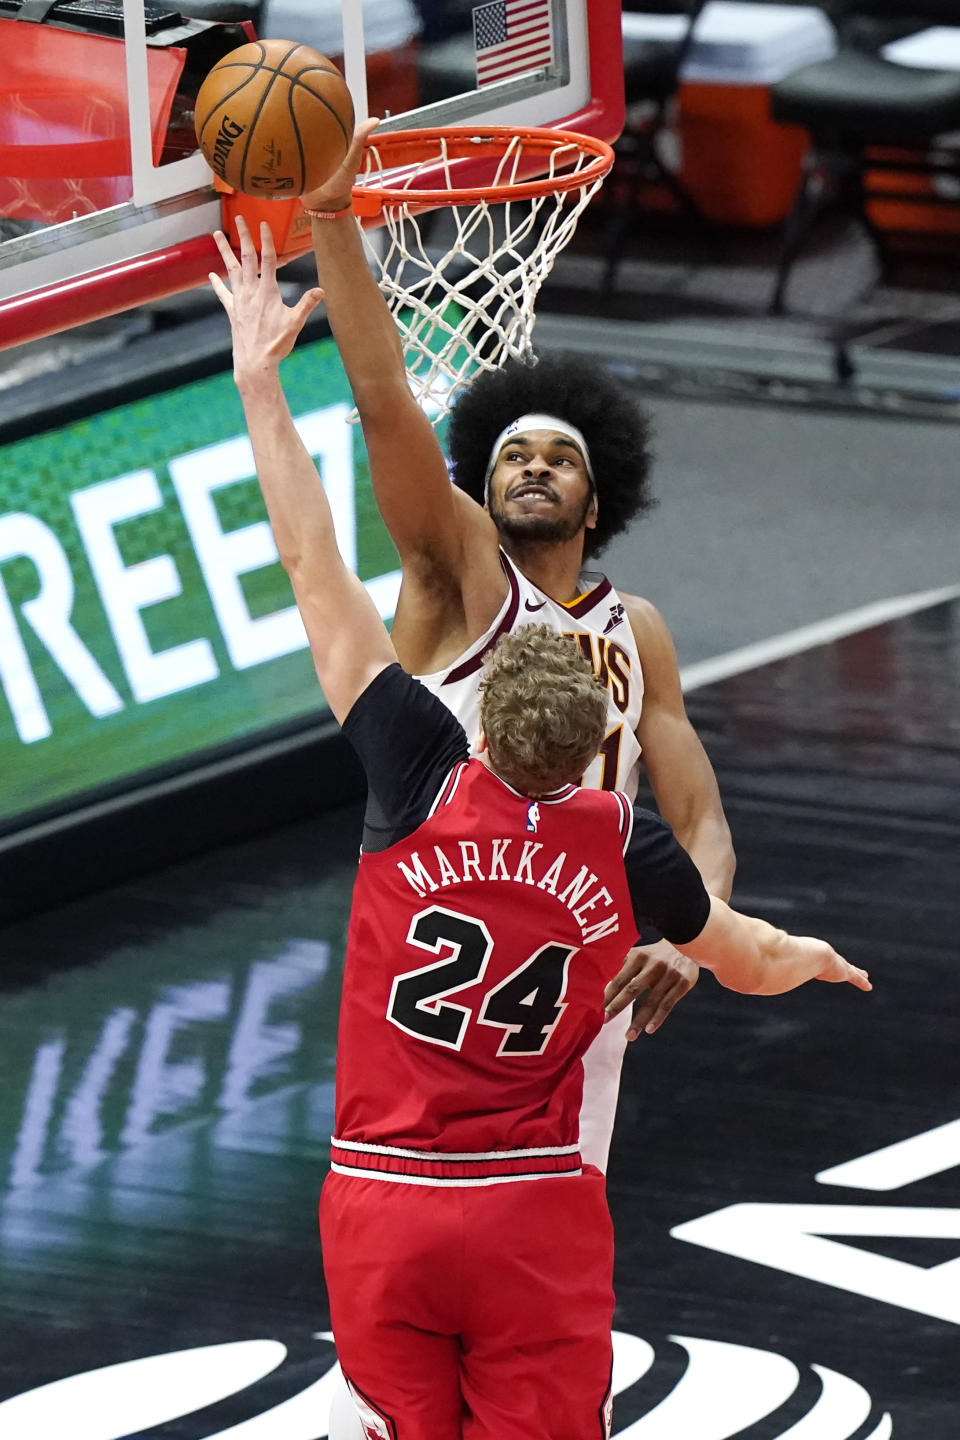 Cleveland Cavaliers center Jarrett Allen, top, blocks a shot by Chicago Bulls forward Lauri Markkanen during the second half of an NBA basketball game in Chicago, Wednesday, March 24, 2021. The Cleveland Cavaliers won 103-94. (AP Photo/Nam Y. Huh)